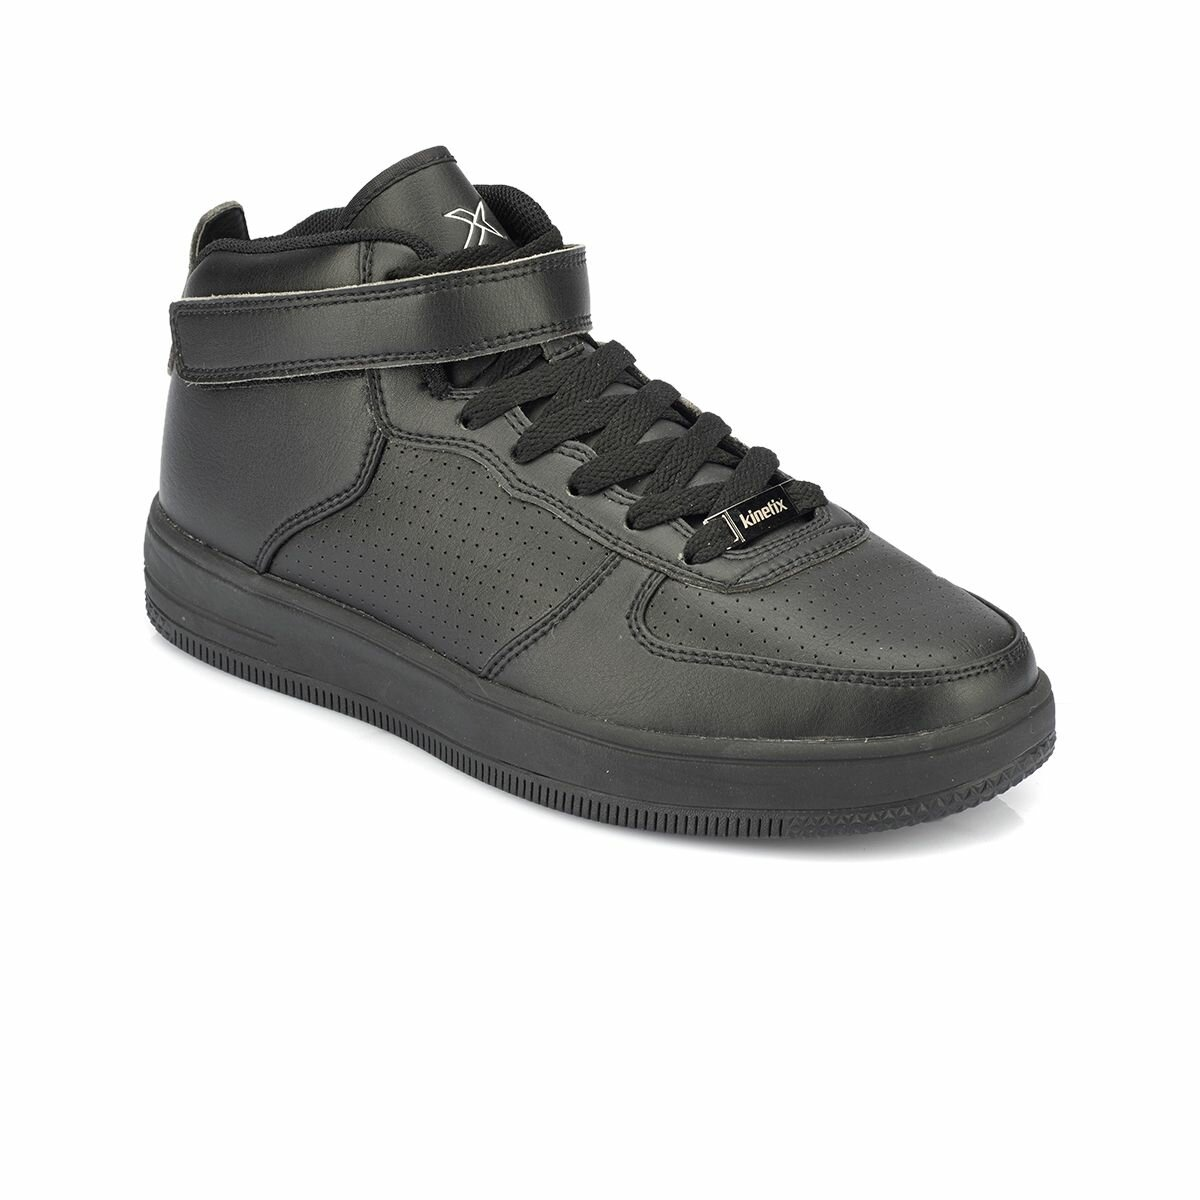 FLO ABELLA HI Black Women 'S Sneaker Shoes KINETIX